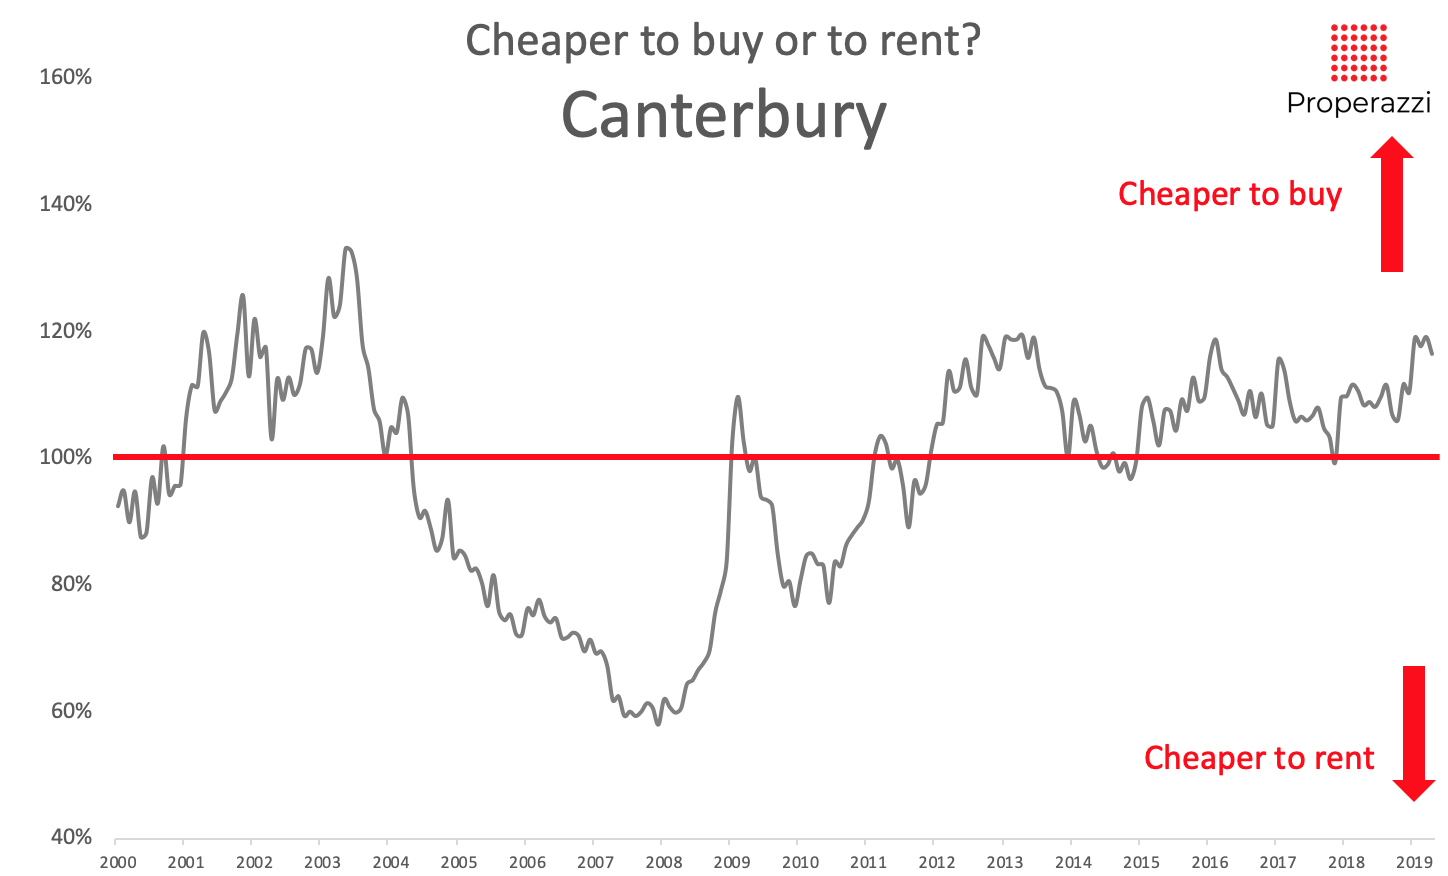 To buy or to rent in Canterbury May 2019